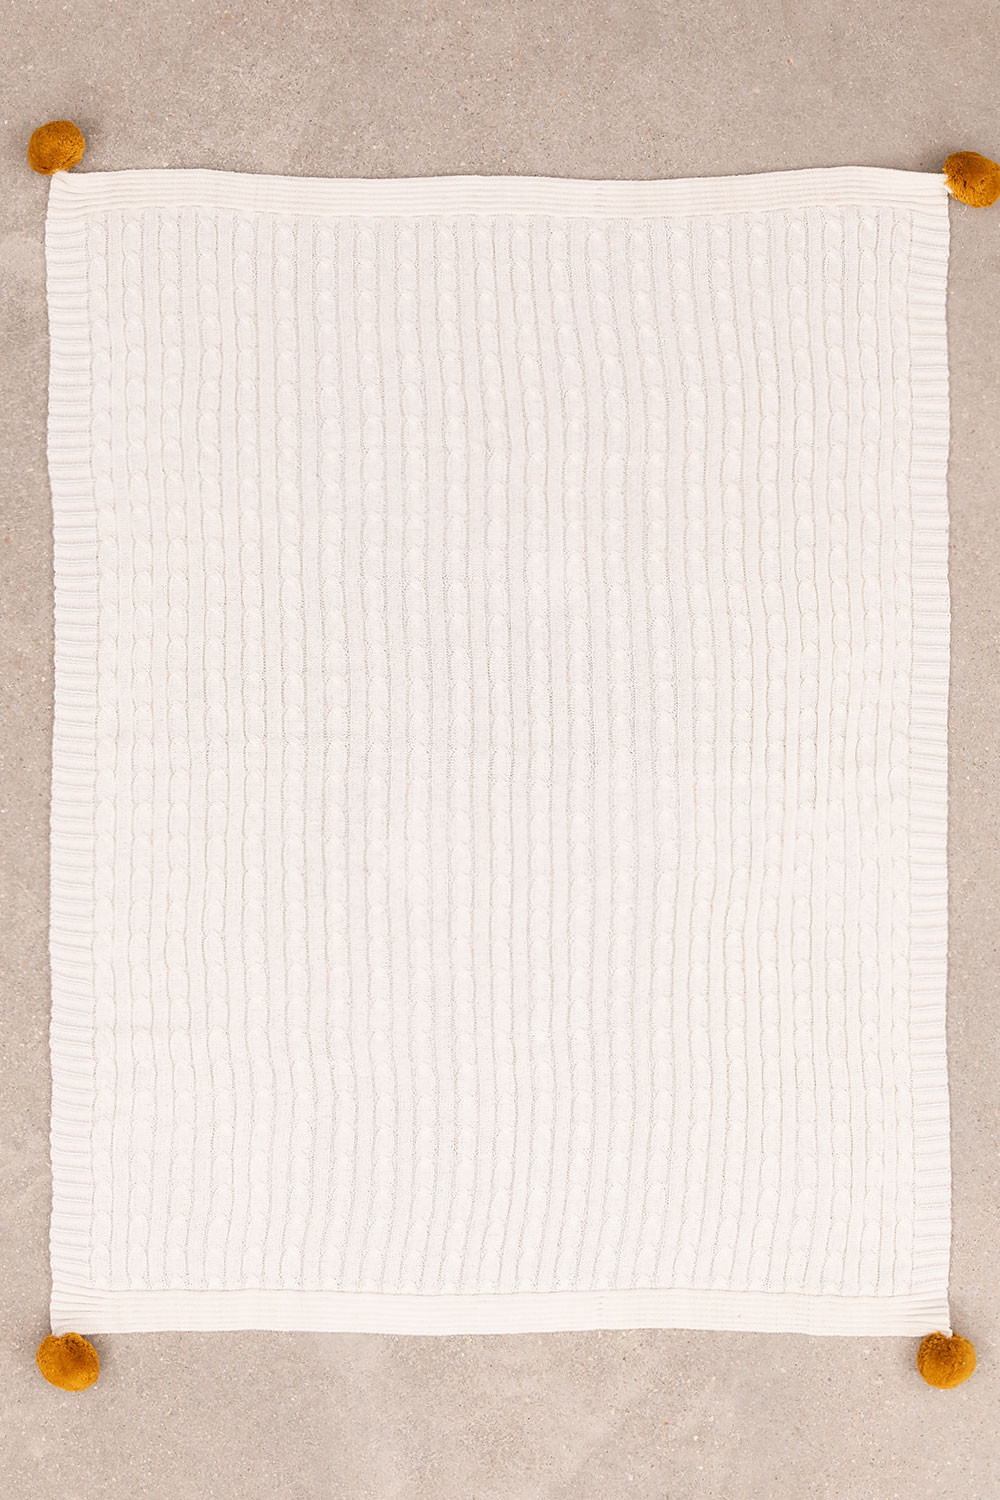 Braided Cotton Swaddle Benys Kids, gallery image 1